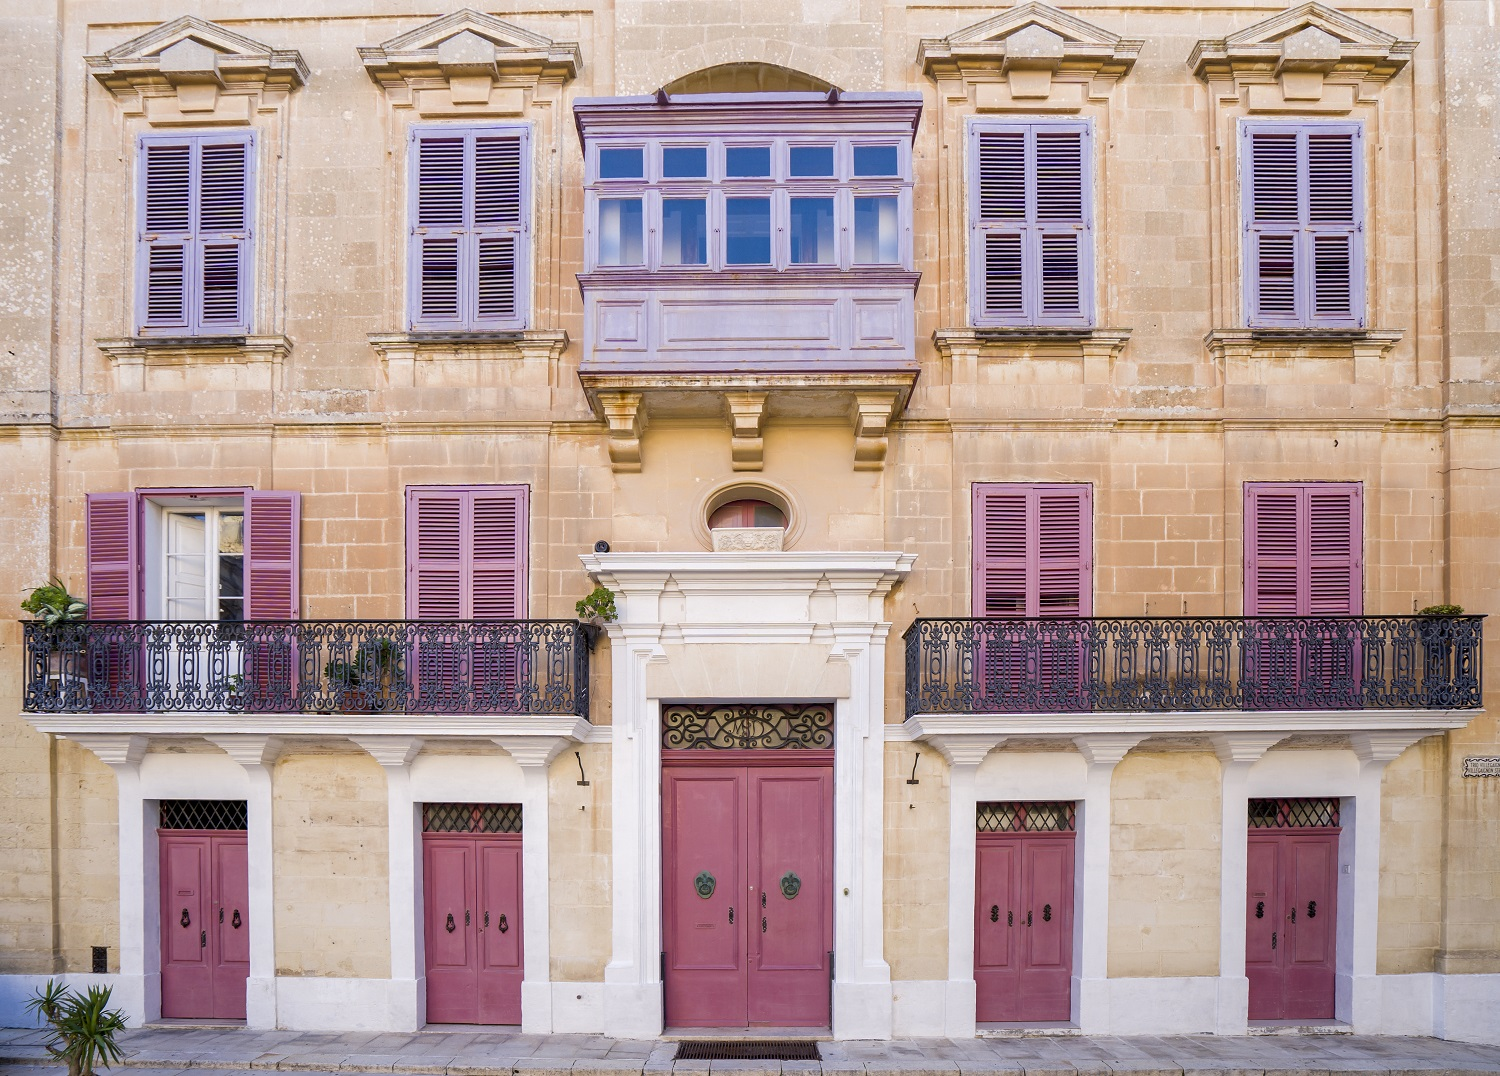 Colorful door Facade In Malta, typical stone wall and Maltese architecture